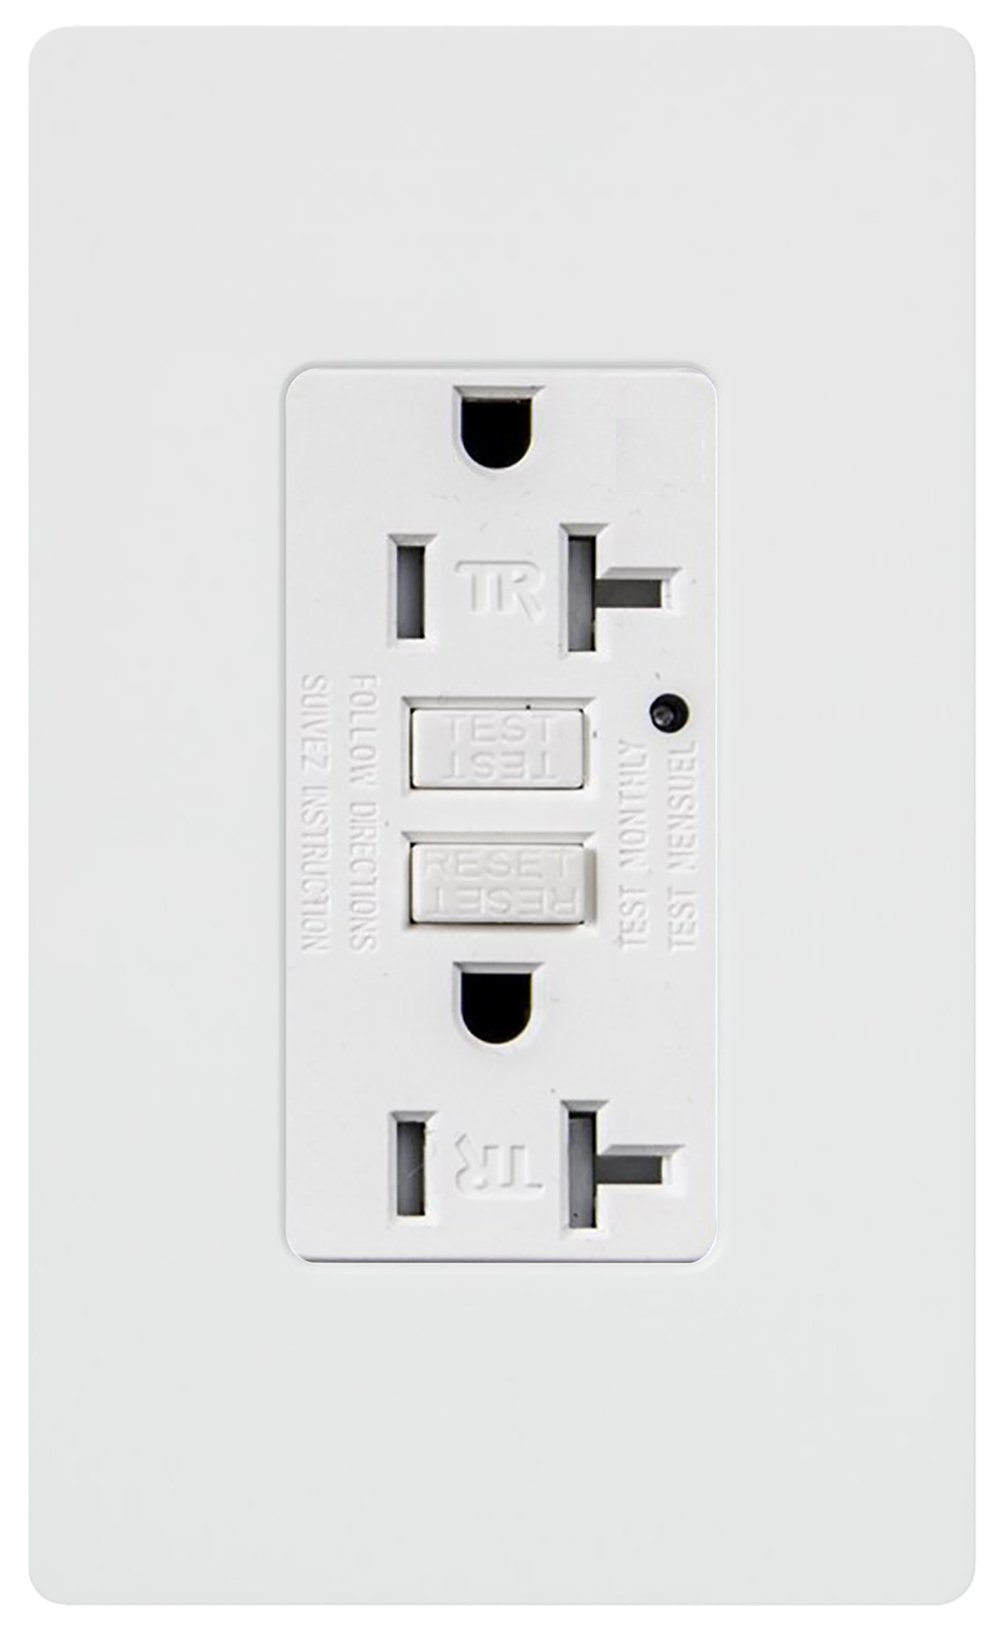 ground fault circuit interrupter outlets - page 3